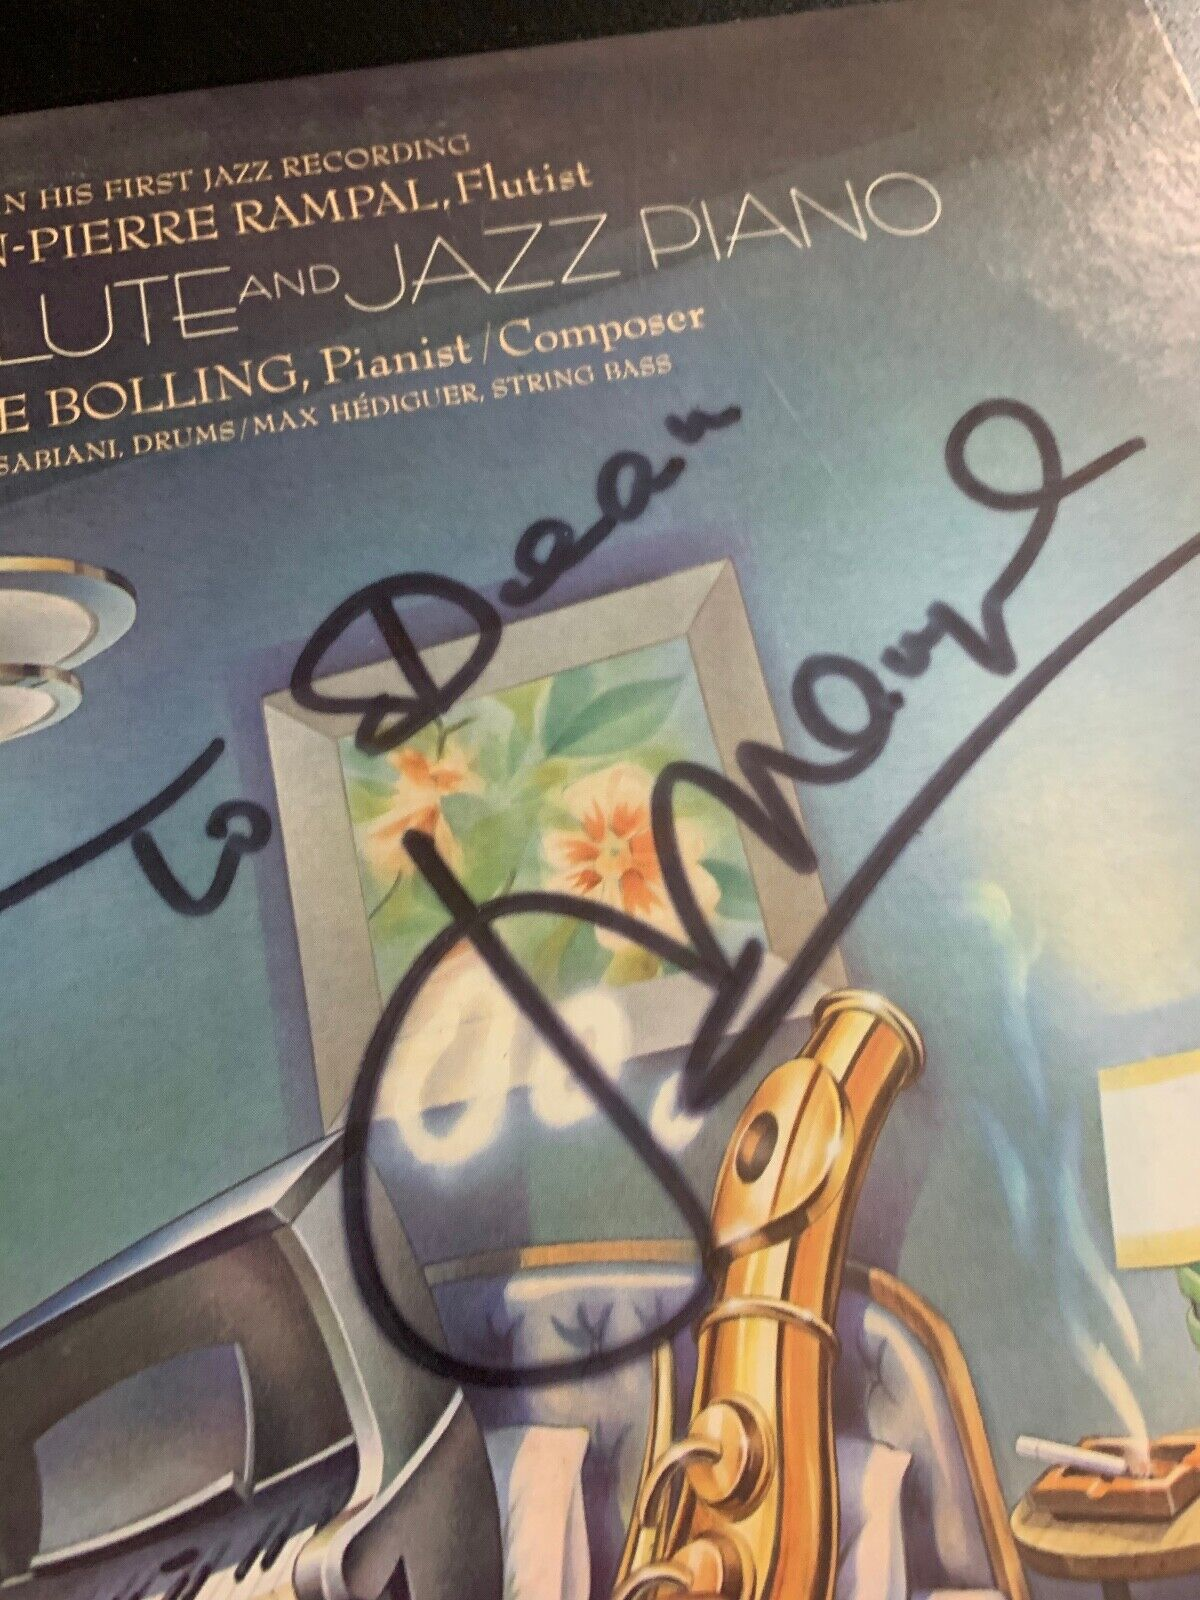 PAIR OF FLUTE CLASSICAL INSTRUMENTAL LP RECORDS BOTH AUTOGRAPHED SUSAN GREENBERG - $19.99